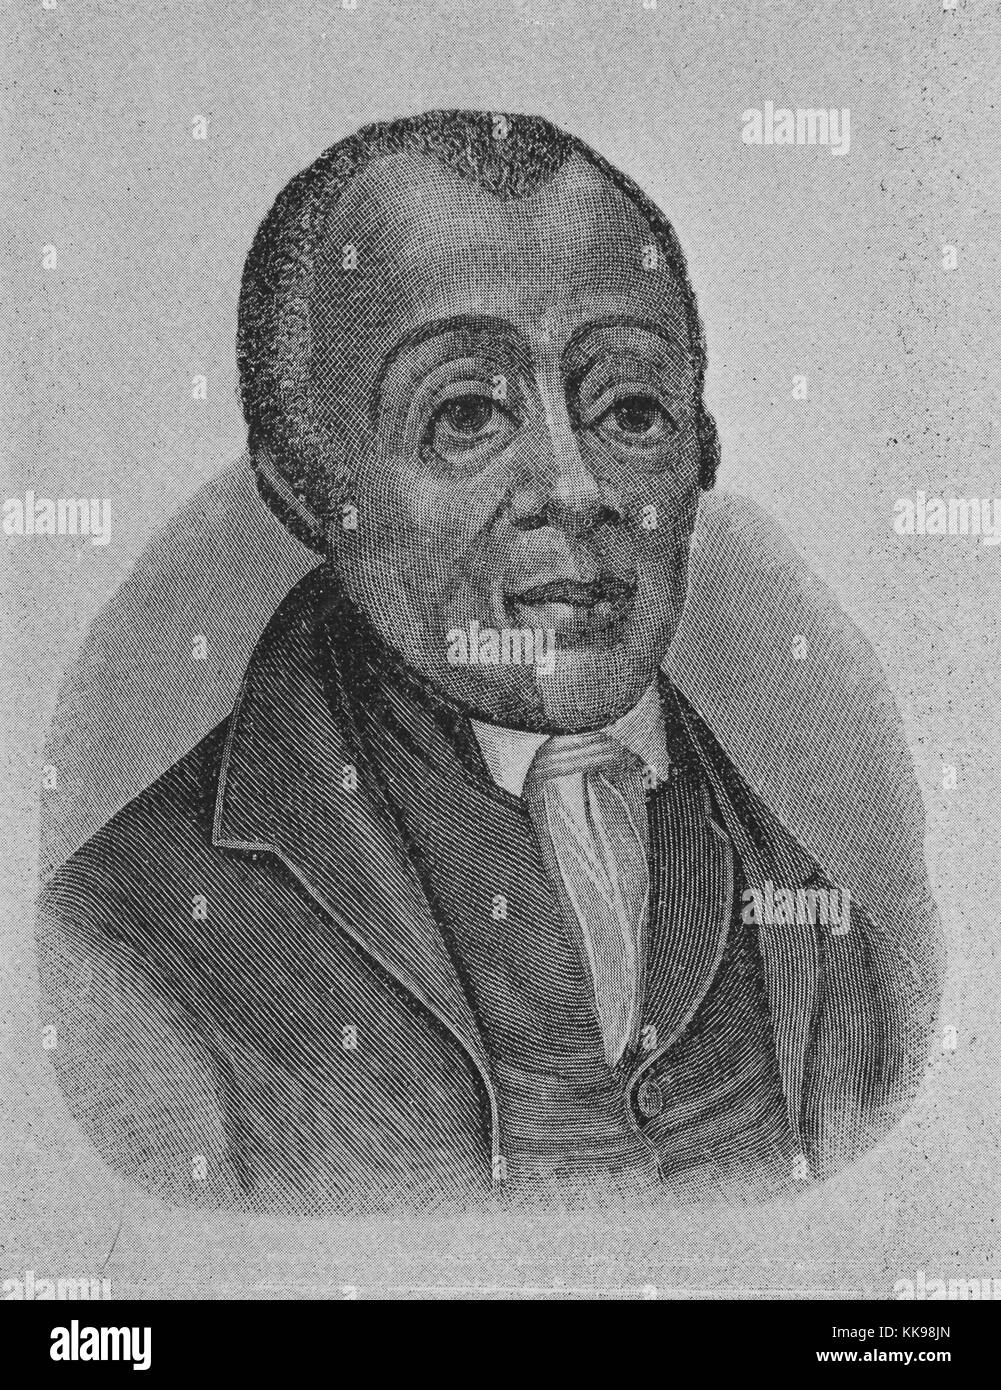 Etched portrait of Reverend Richard Allen, a minister, educator, writer, and one of the United States' most - Stock Image